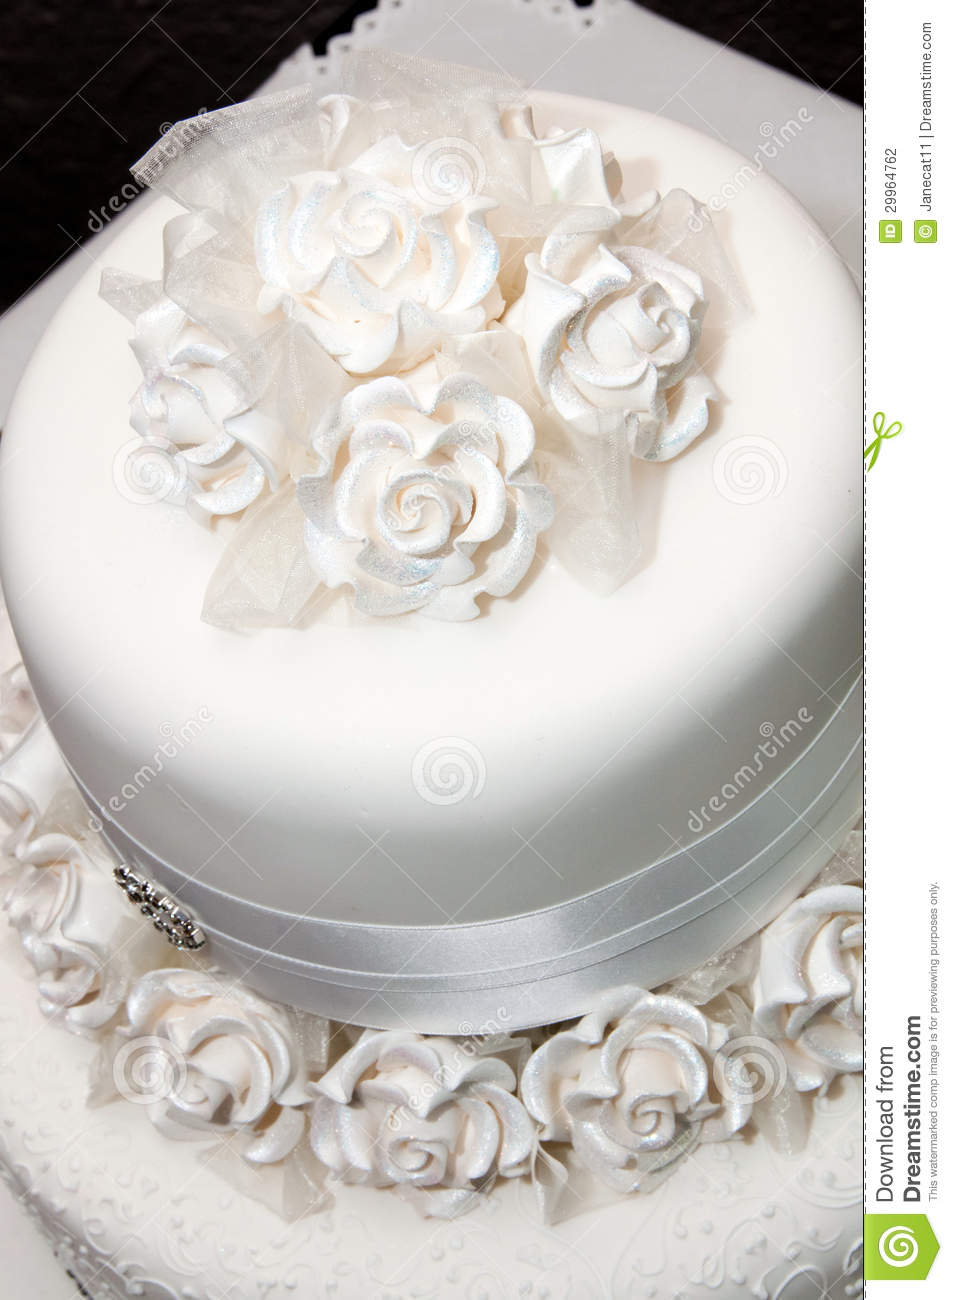 wedding cake fondant or royal icing white wedding cake stock photo image of bakery marriage 22691